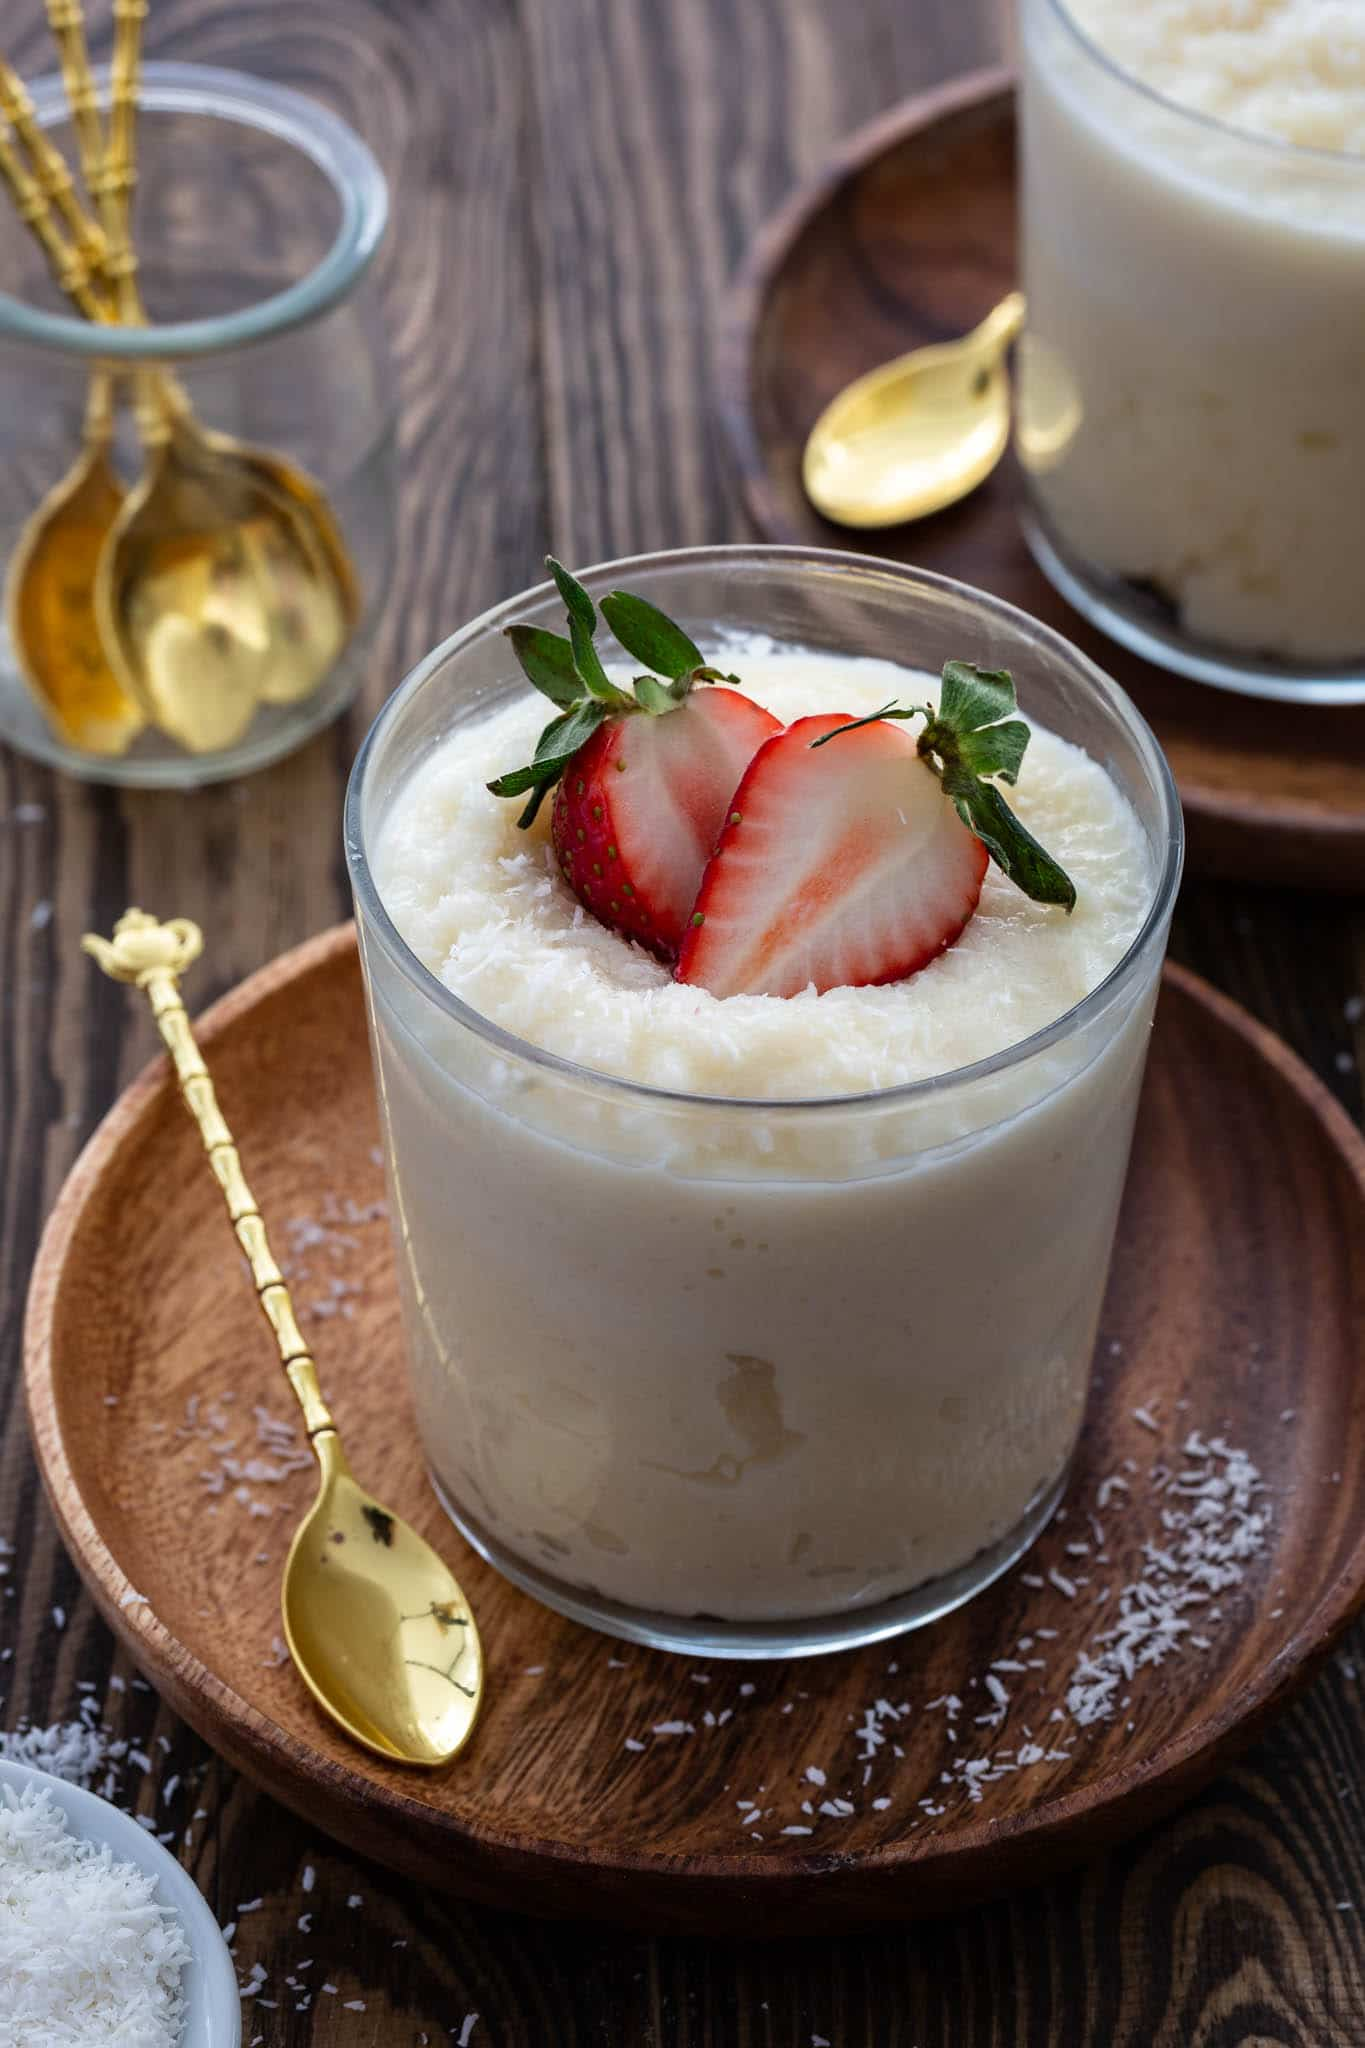 A glass of cocada cremosa (Brazilian coconut pudding) topped with fresh berries.